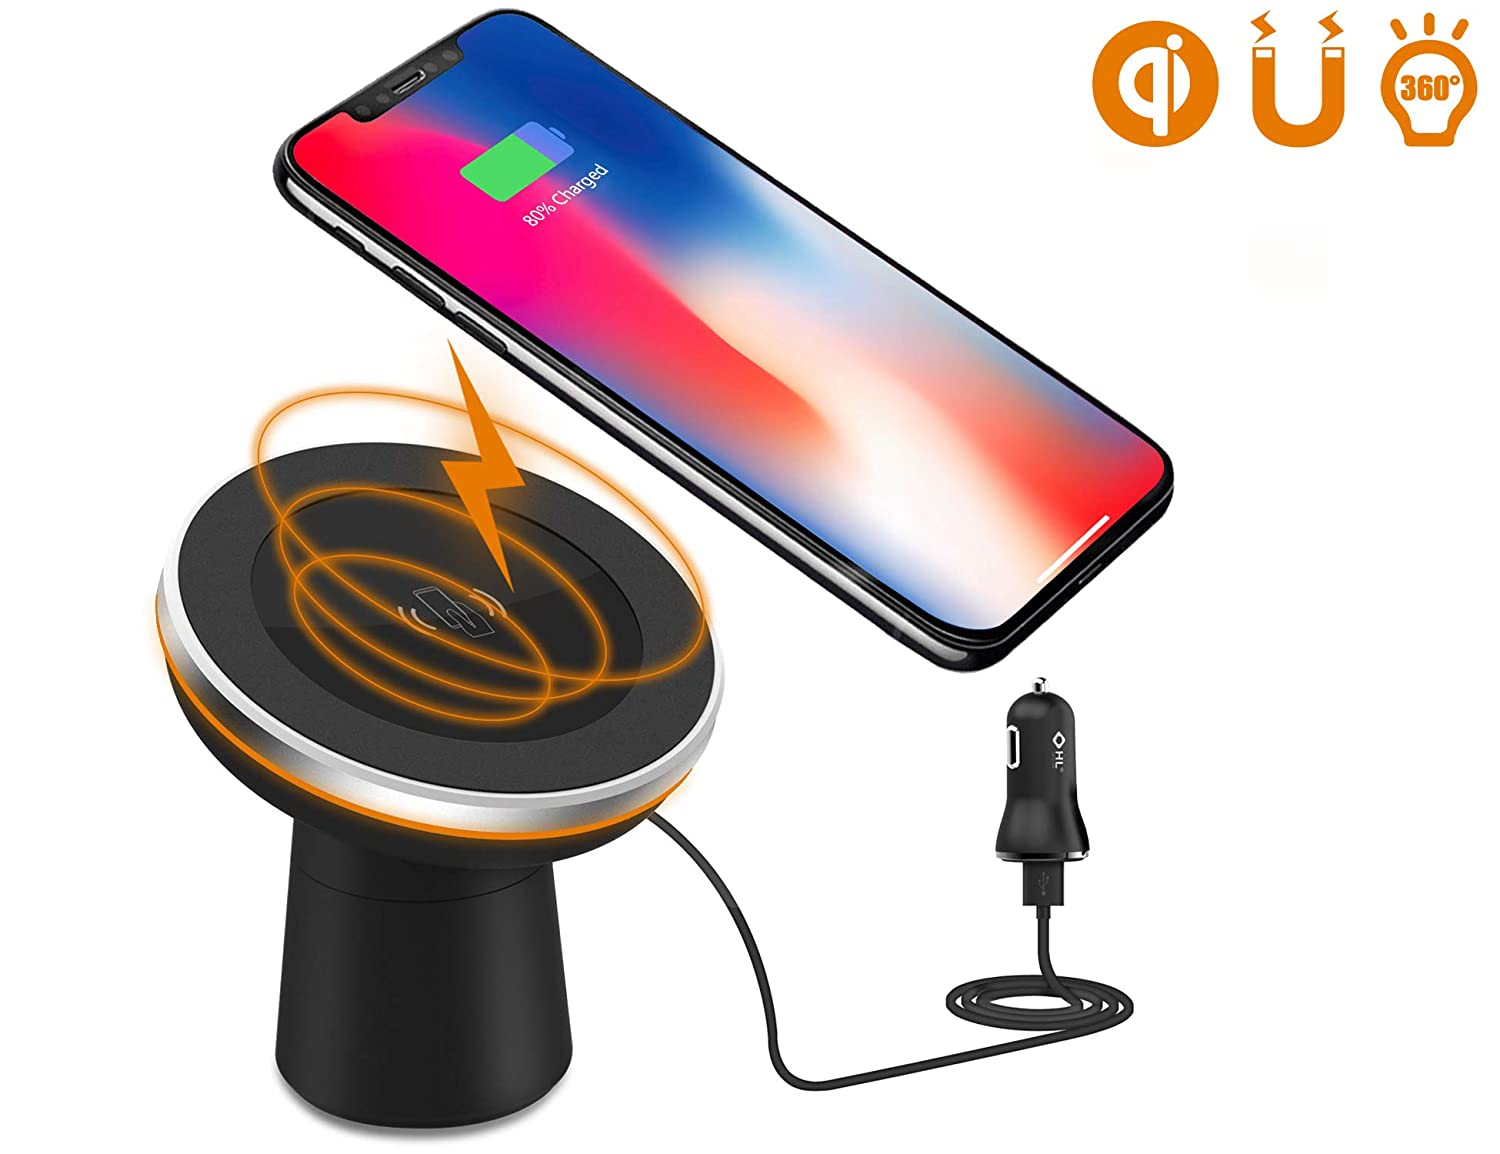 Wireless Car Charger,Dgtal Car Mount Phone Holder Air Vent or Dashboard for iPhone XS/iPhone XS Max/iPhone XR/iPhone X/ 8/8 Plus Samsung Galaxy Note 9/S9/S9 Plus All Qi-Enabled Devices